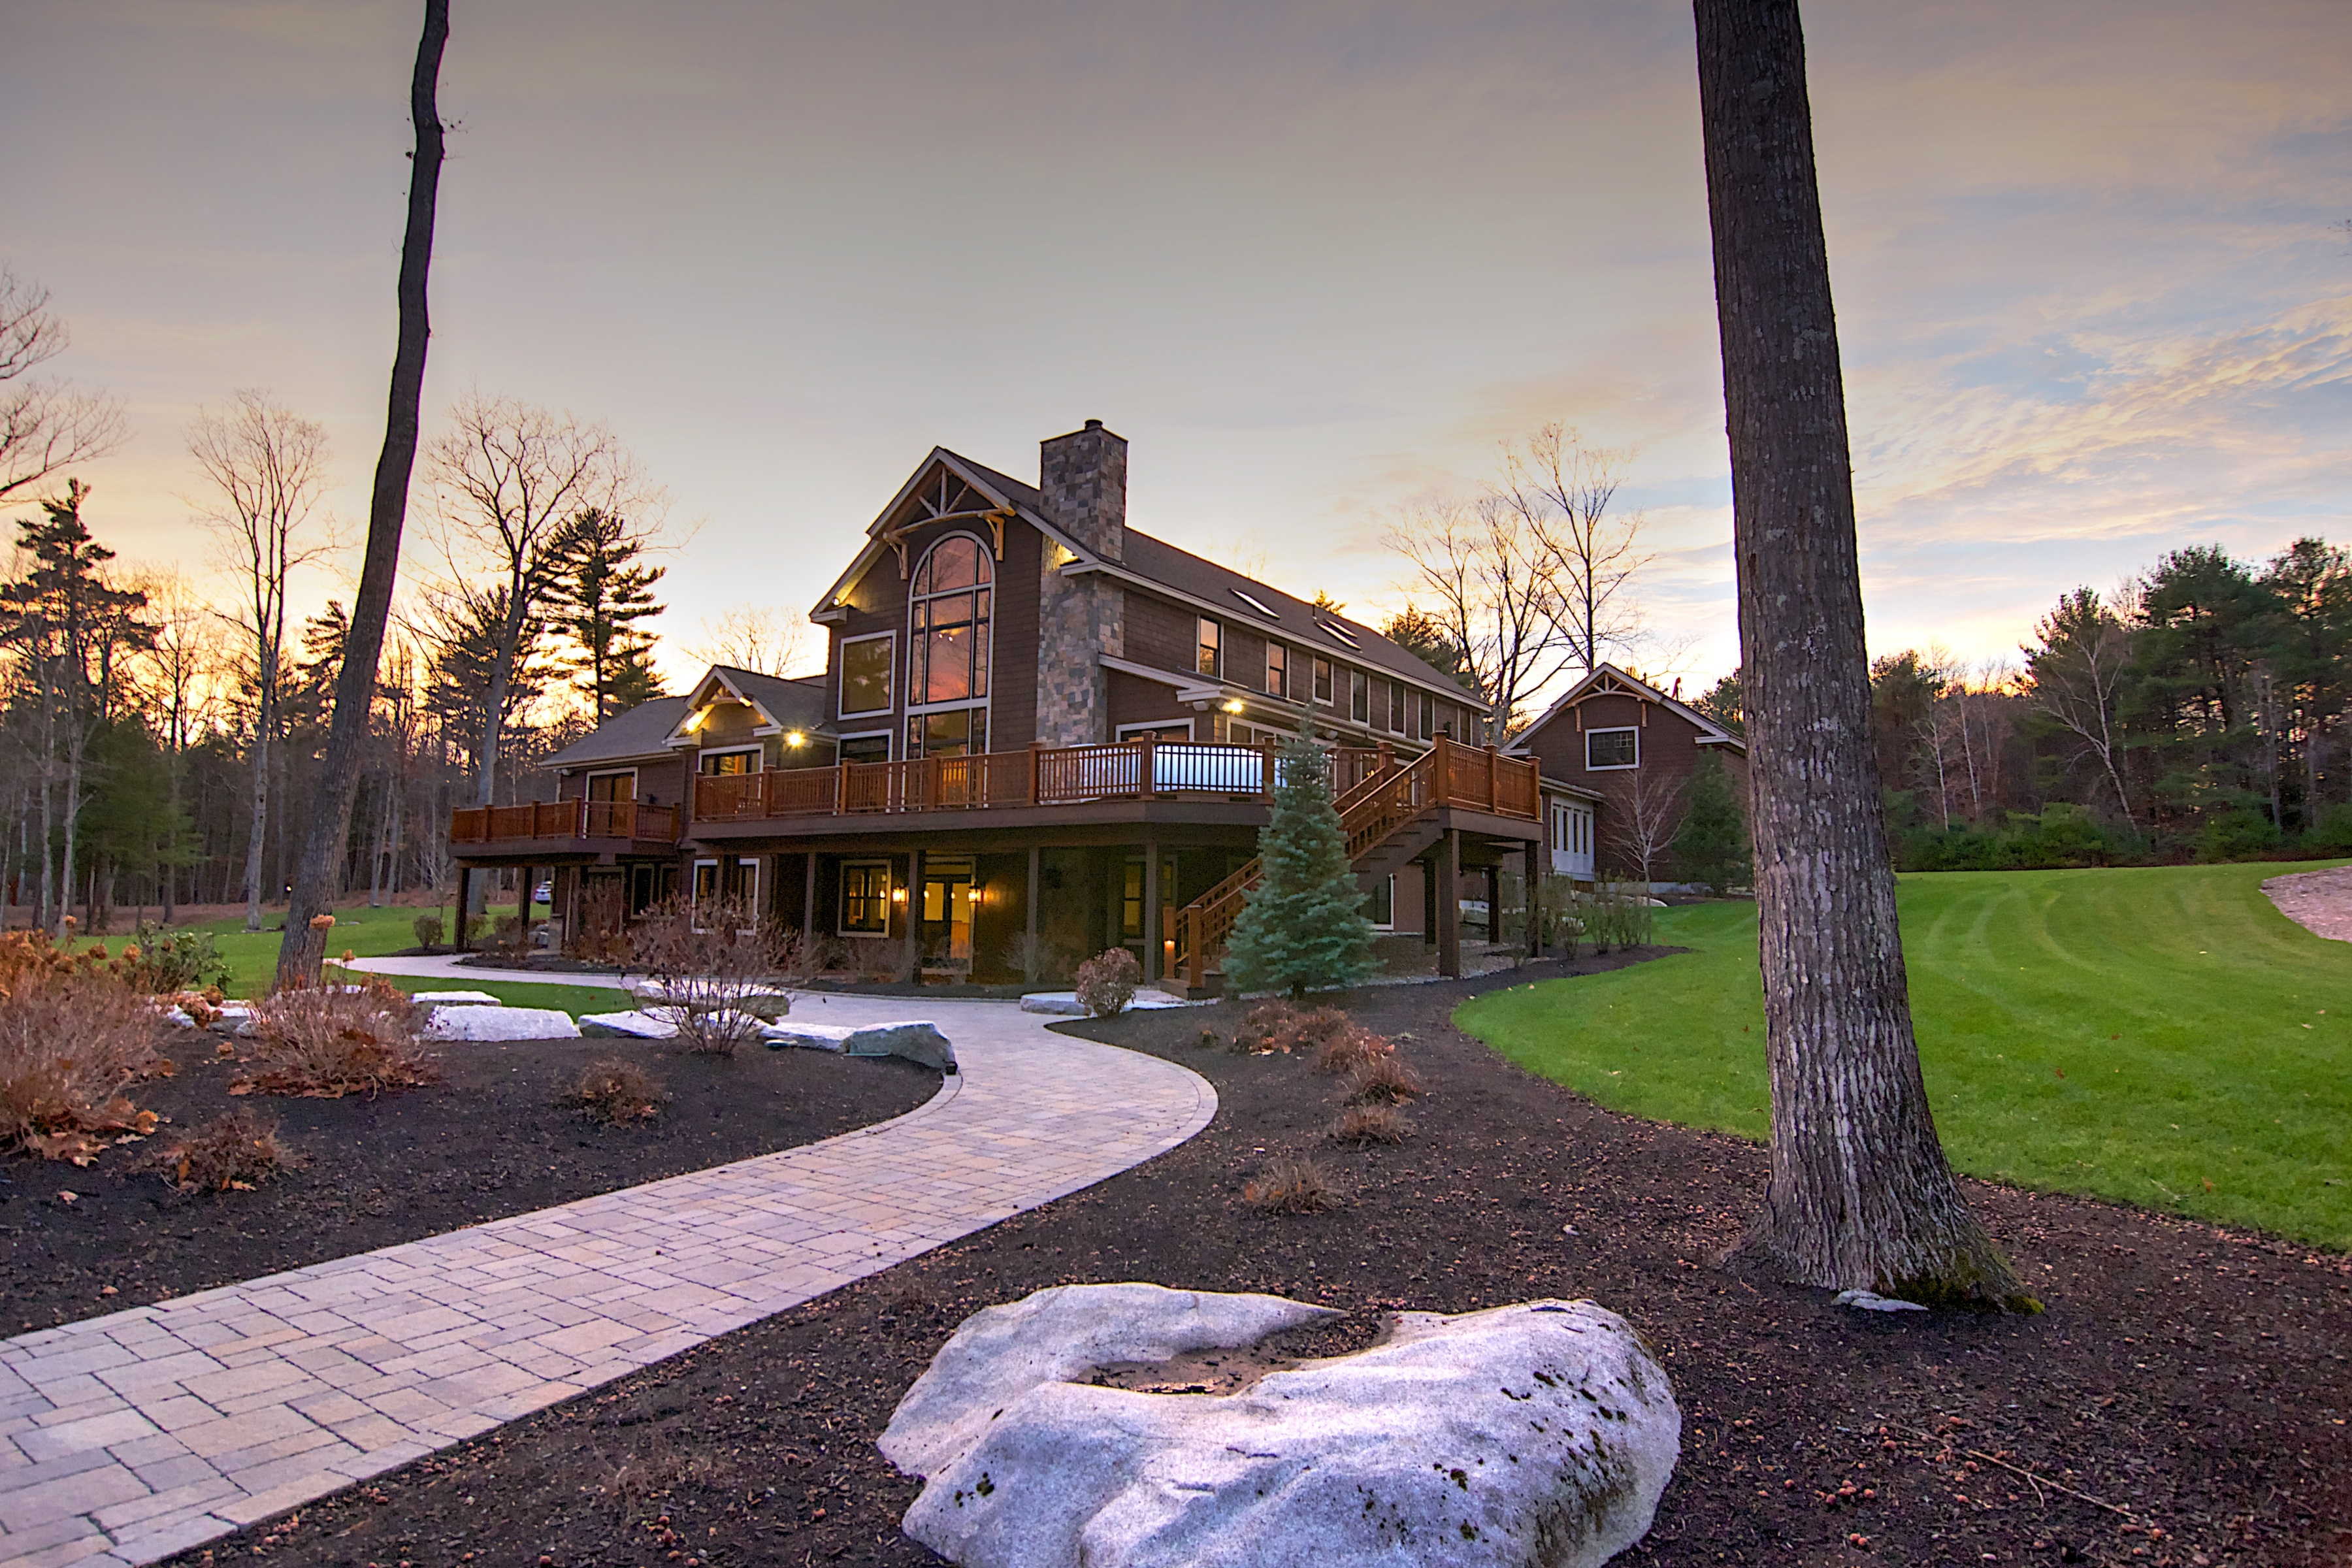 Single Family Home for Sale at Lake Winnipesaukee Masterpiece 78 Powers Rd Meredith, New Hampshire 03253 United States